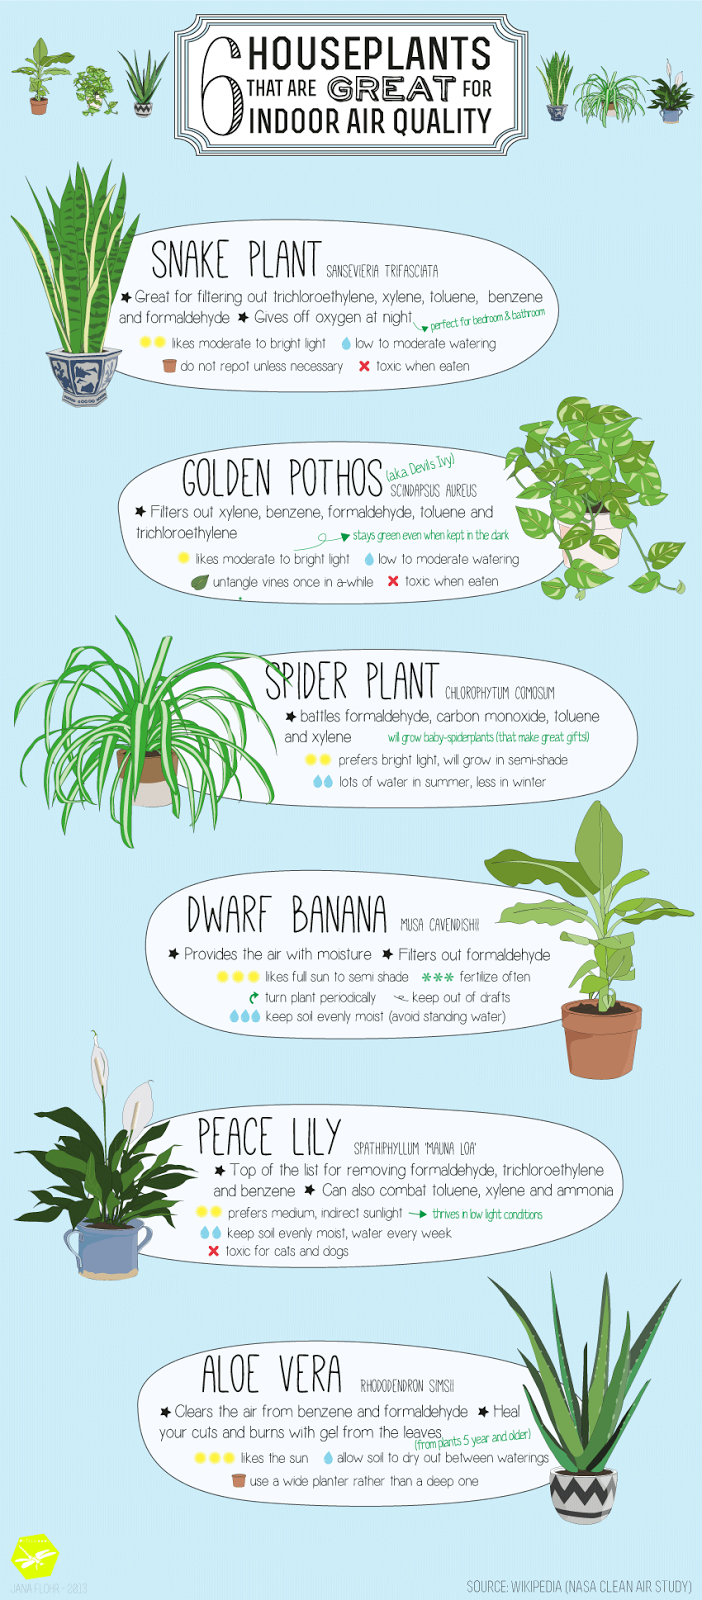 House Of Thol 6 Houseplants That Are Great For Indoor Air